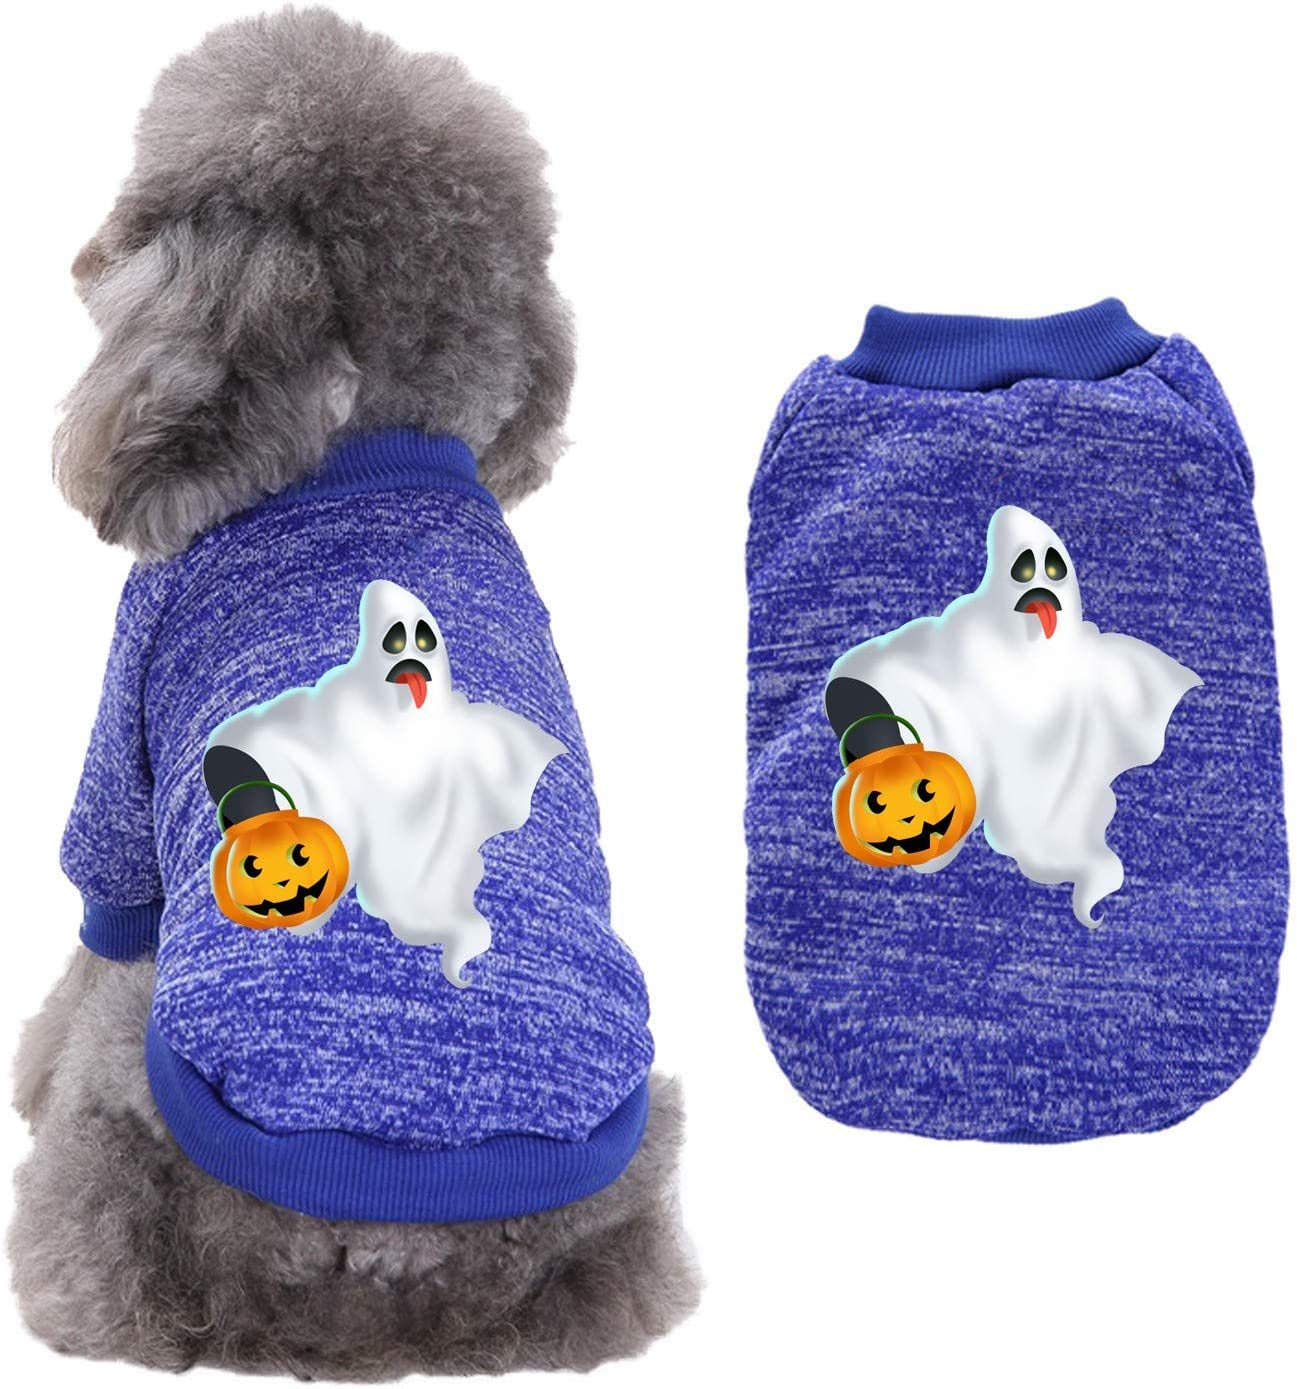 2020 The Inexpensive Newest Halloween Inexpensive Style Pet Dog Warm Clothes Cat Autumn